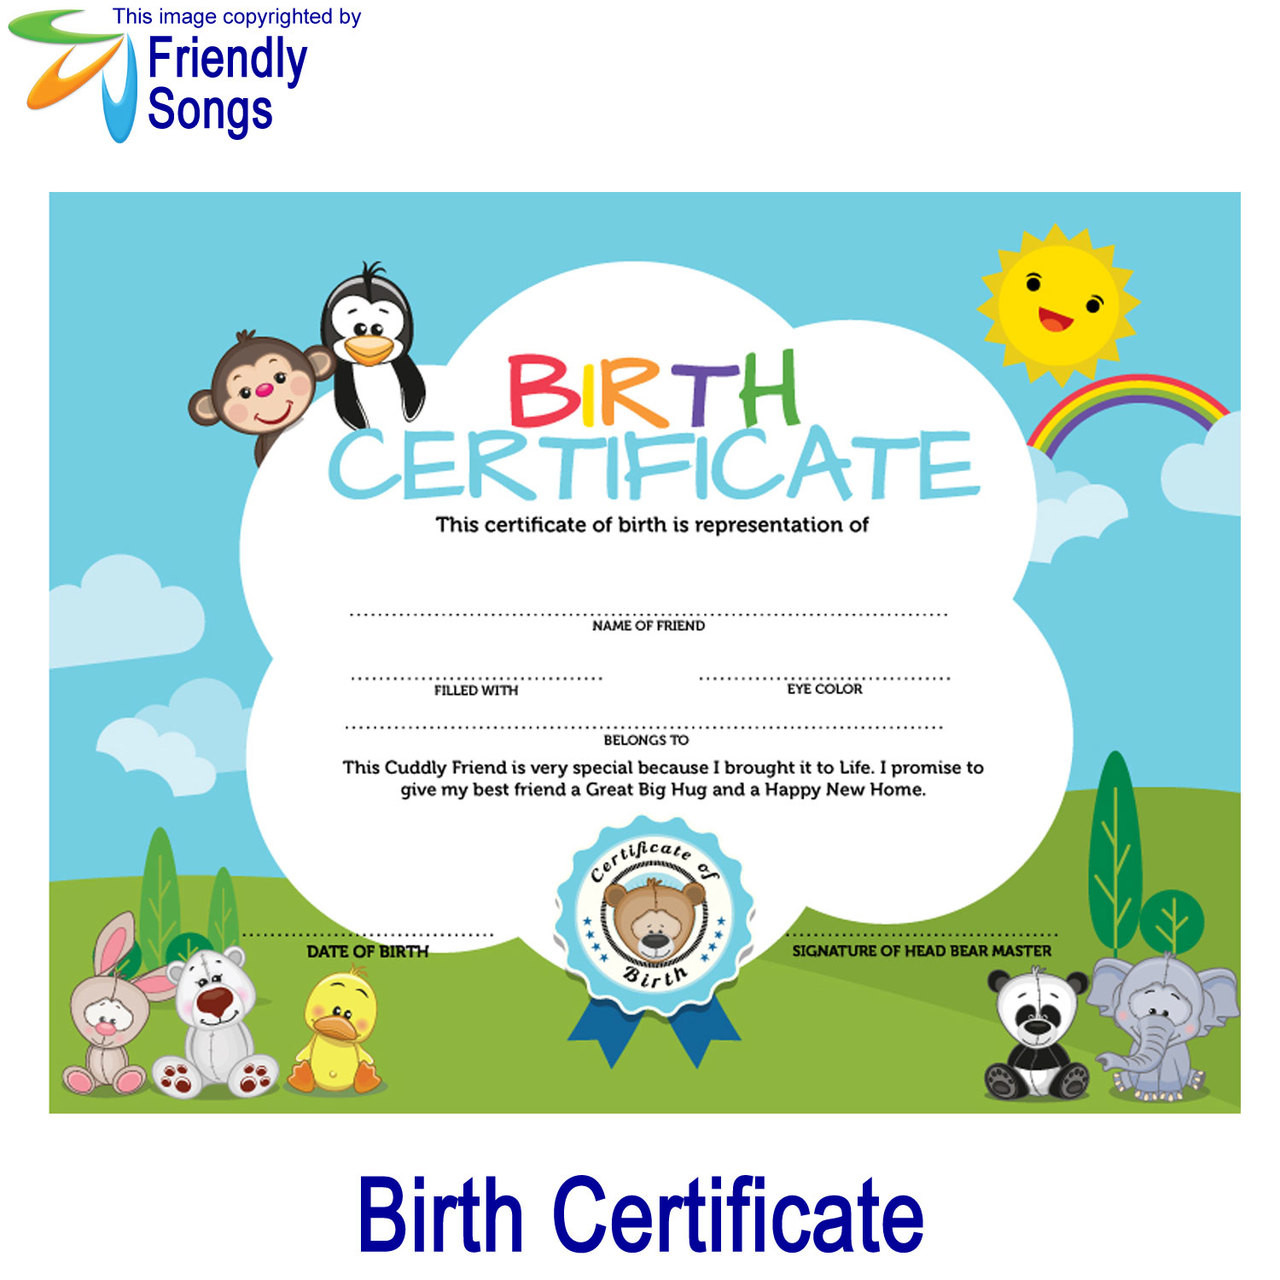 Birth Certificate for your Stuffed Animal